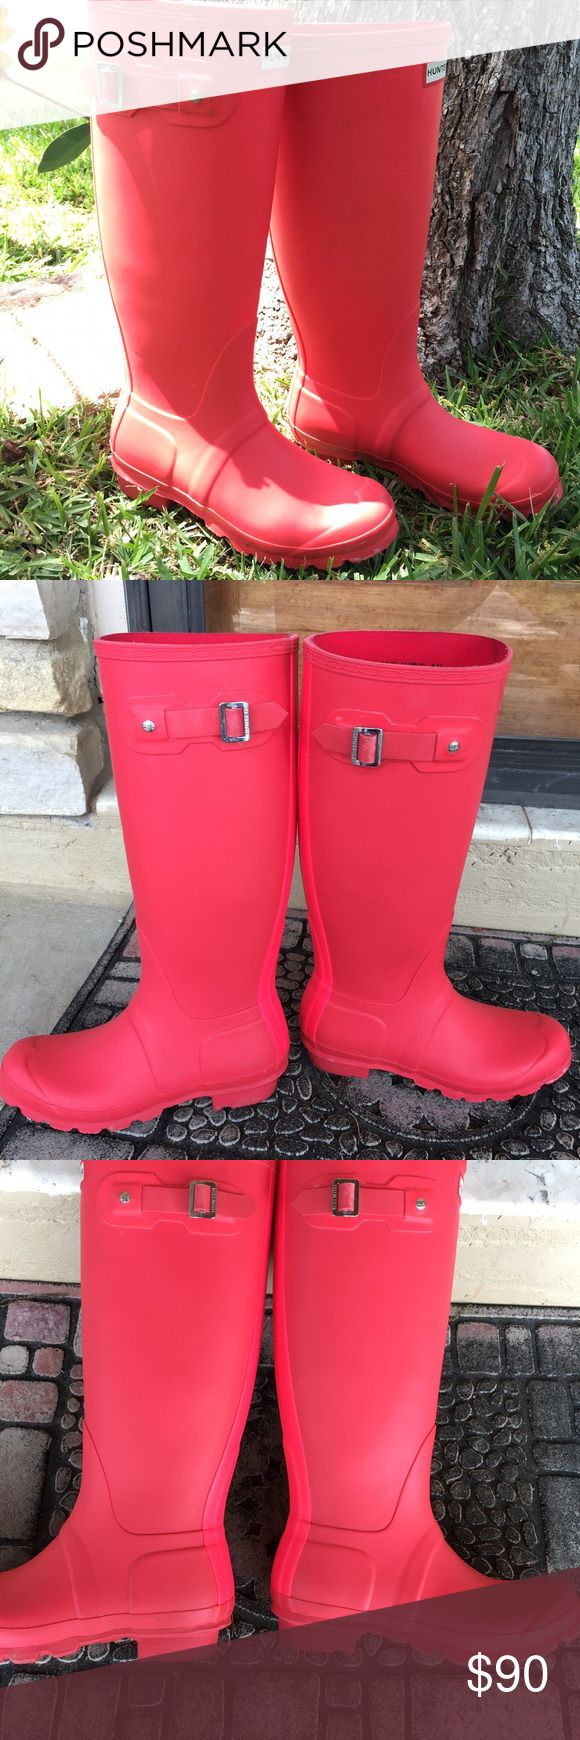 ORIGINAL HUNTER TALL CORAL BOOTS! Such a fun bright, coral color! ! In great used conditions! Bought from another poshmarker but fit too big. Hunter Boots Shoes Winter & Rain Boots